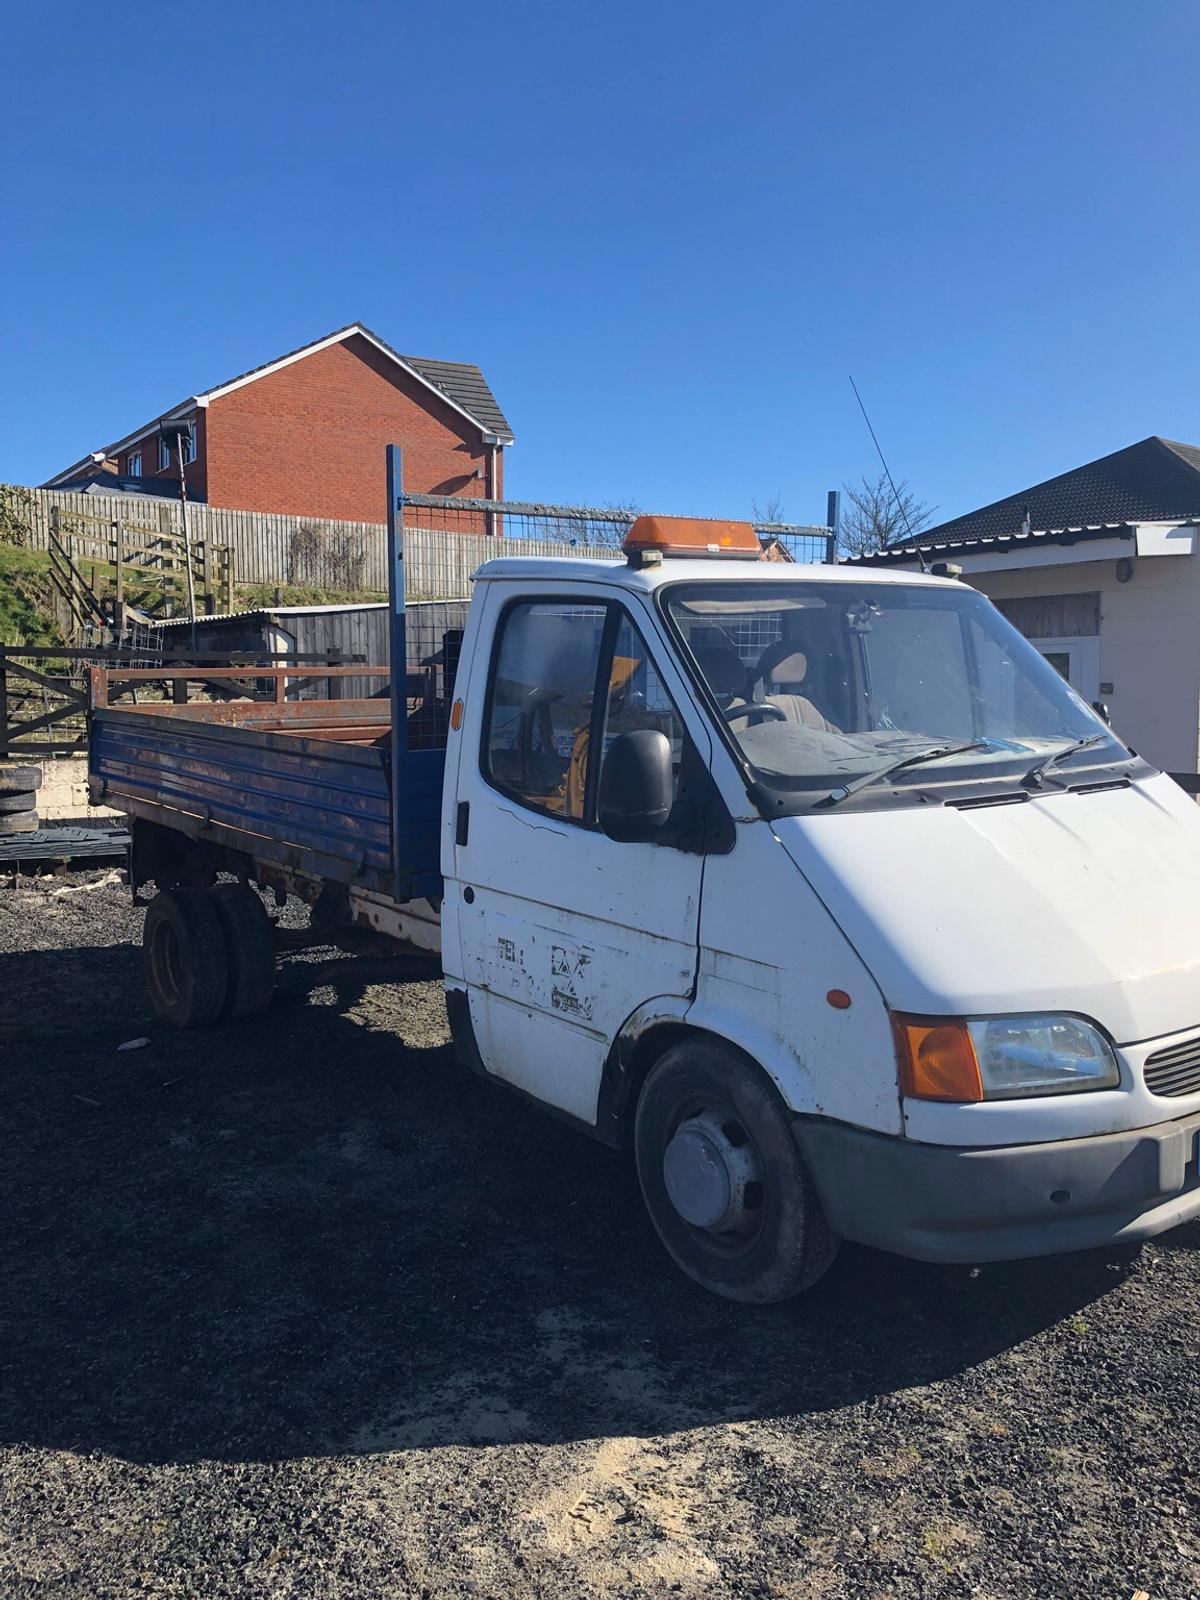 db4bc6f744 Ford Transit Tipper Truck in East Murton for £250.00 for sale - Shpock